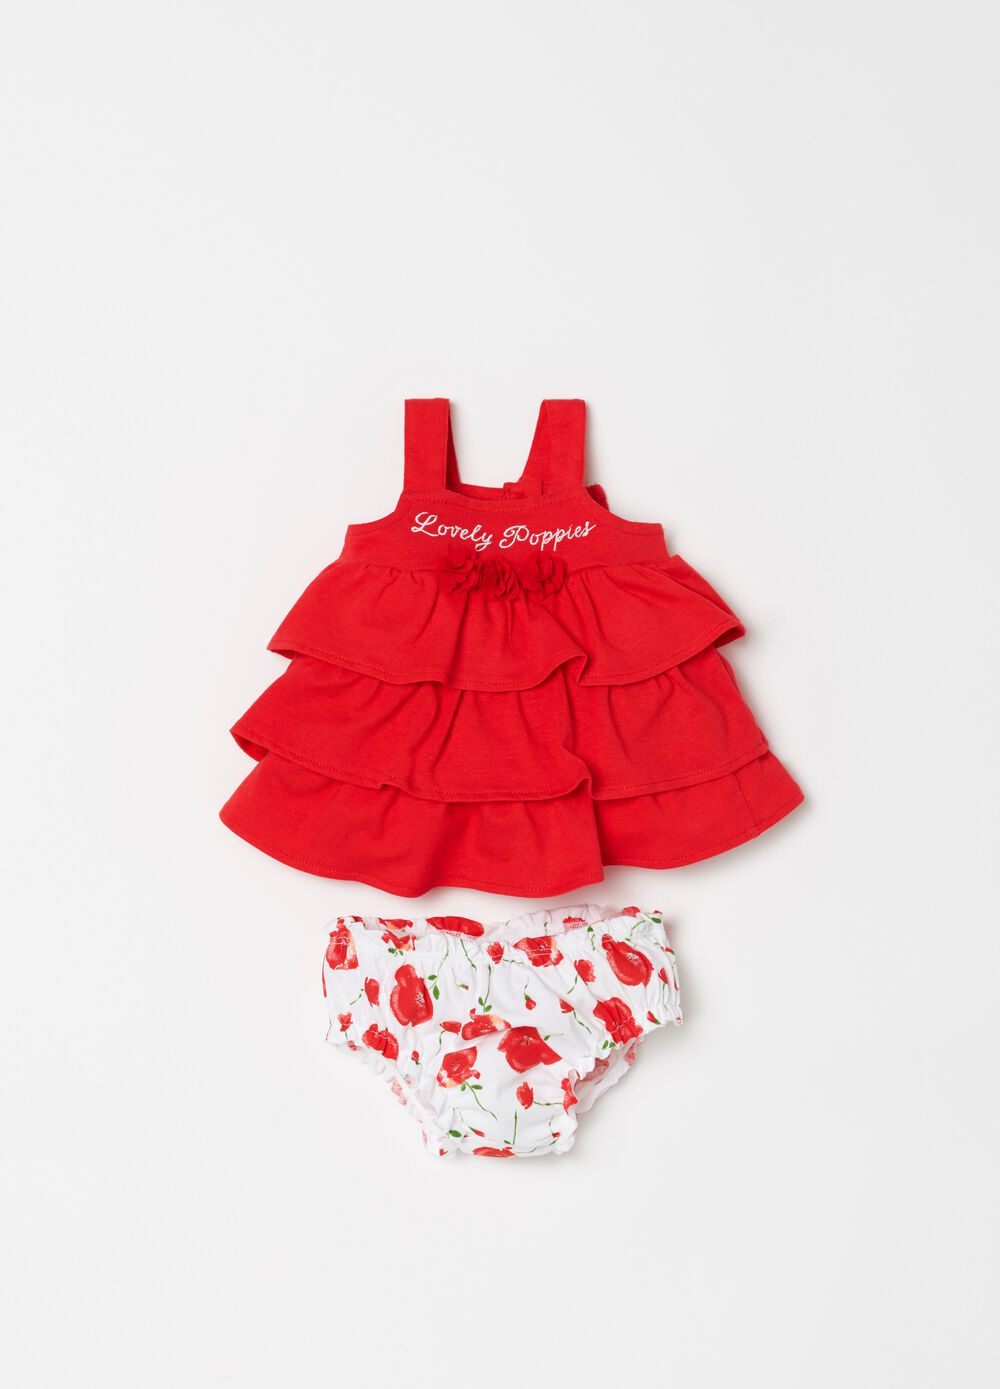 Floral biocotton briefs and dress set